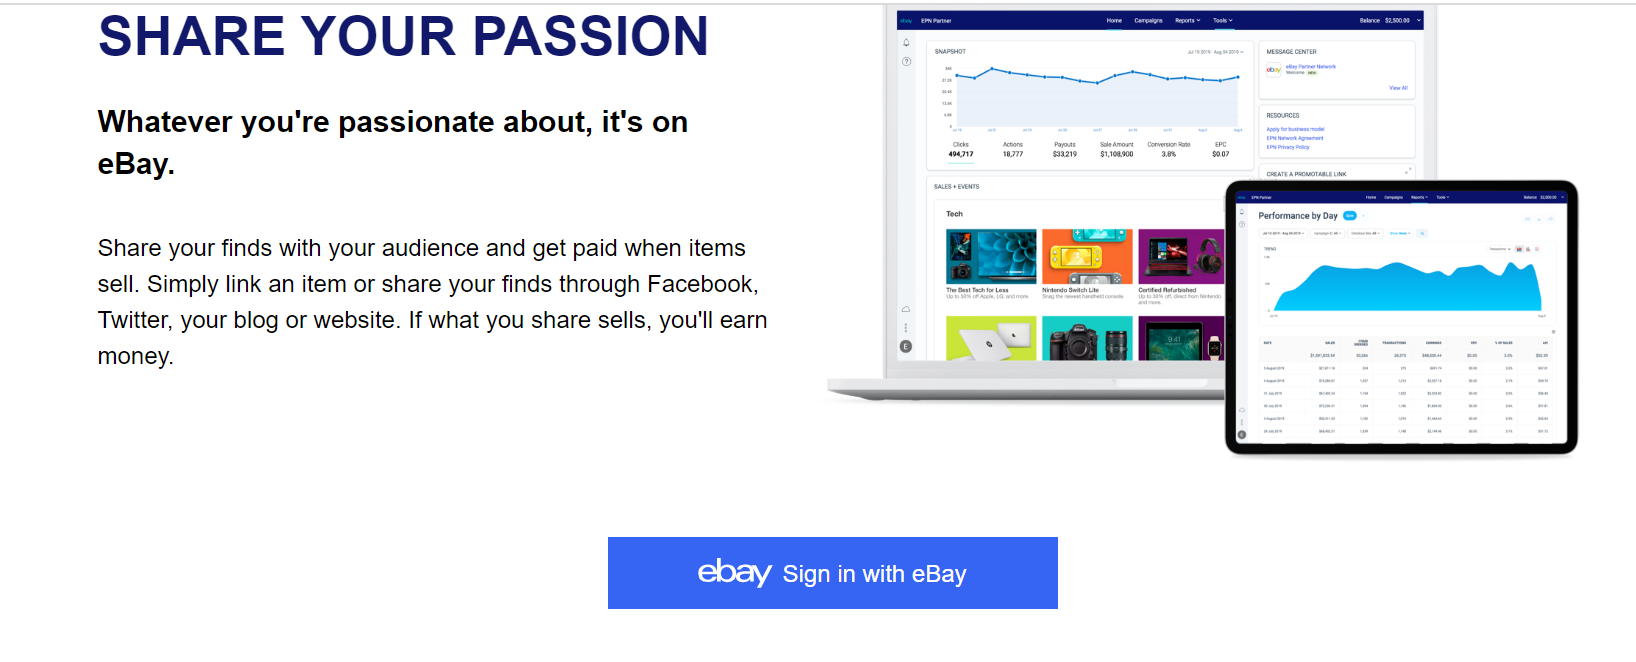 How To Make Money With Ebay Partner Network In 2020